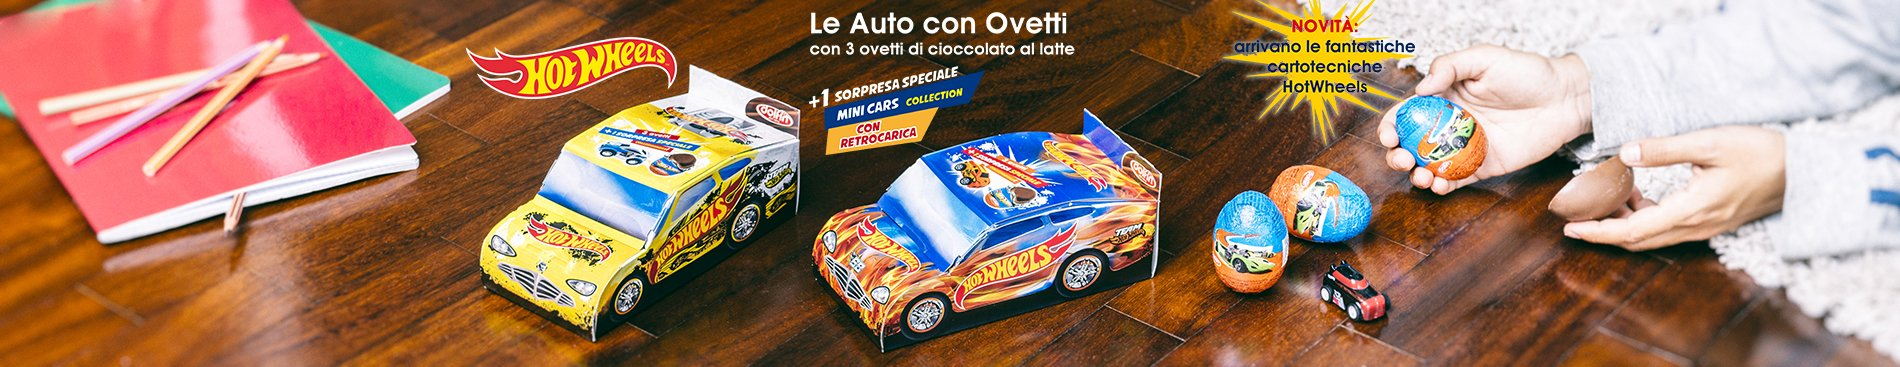 2019 Le auto con Ovetti Hot Wheels